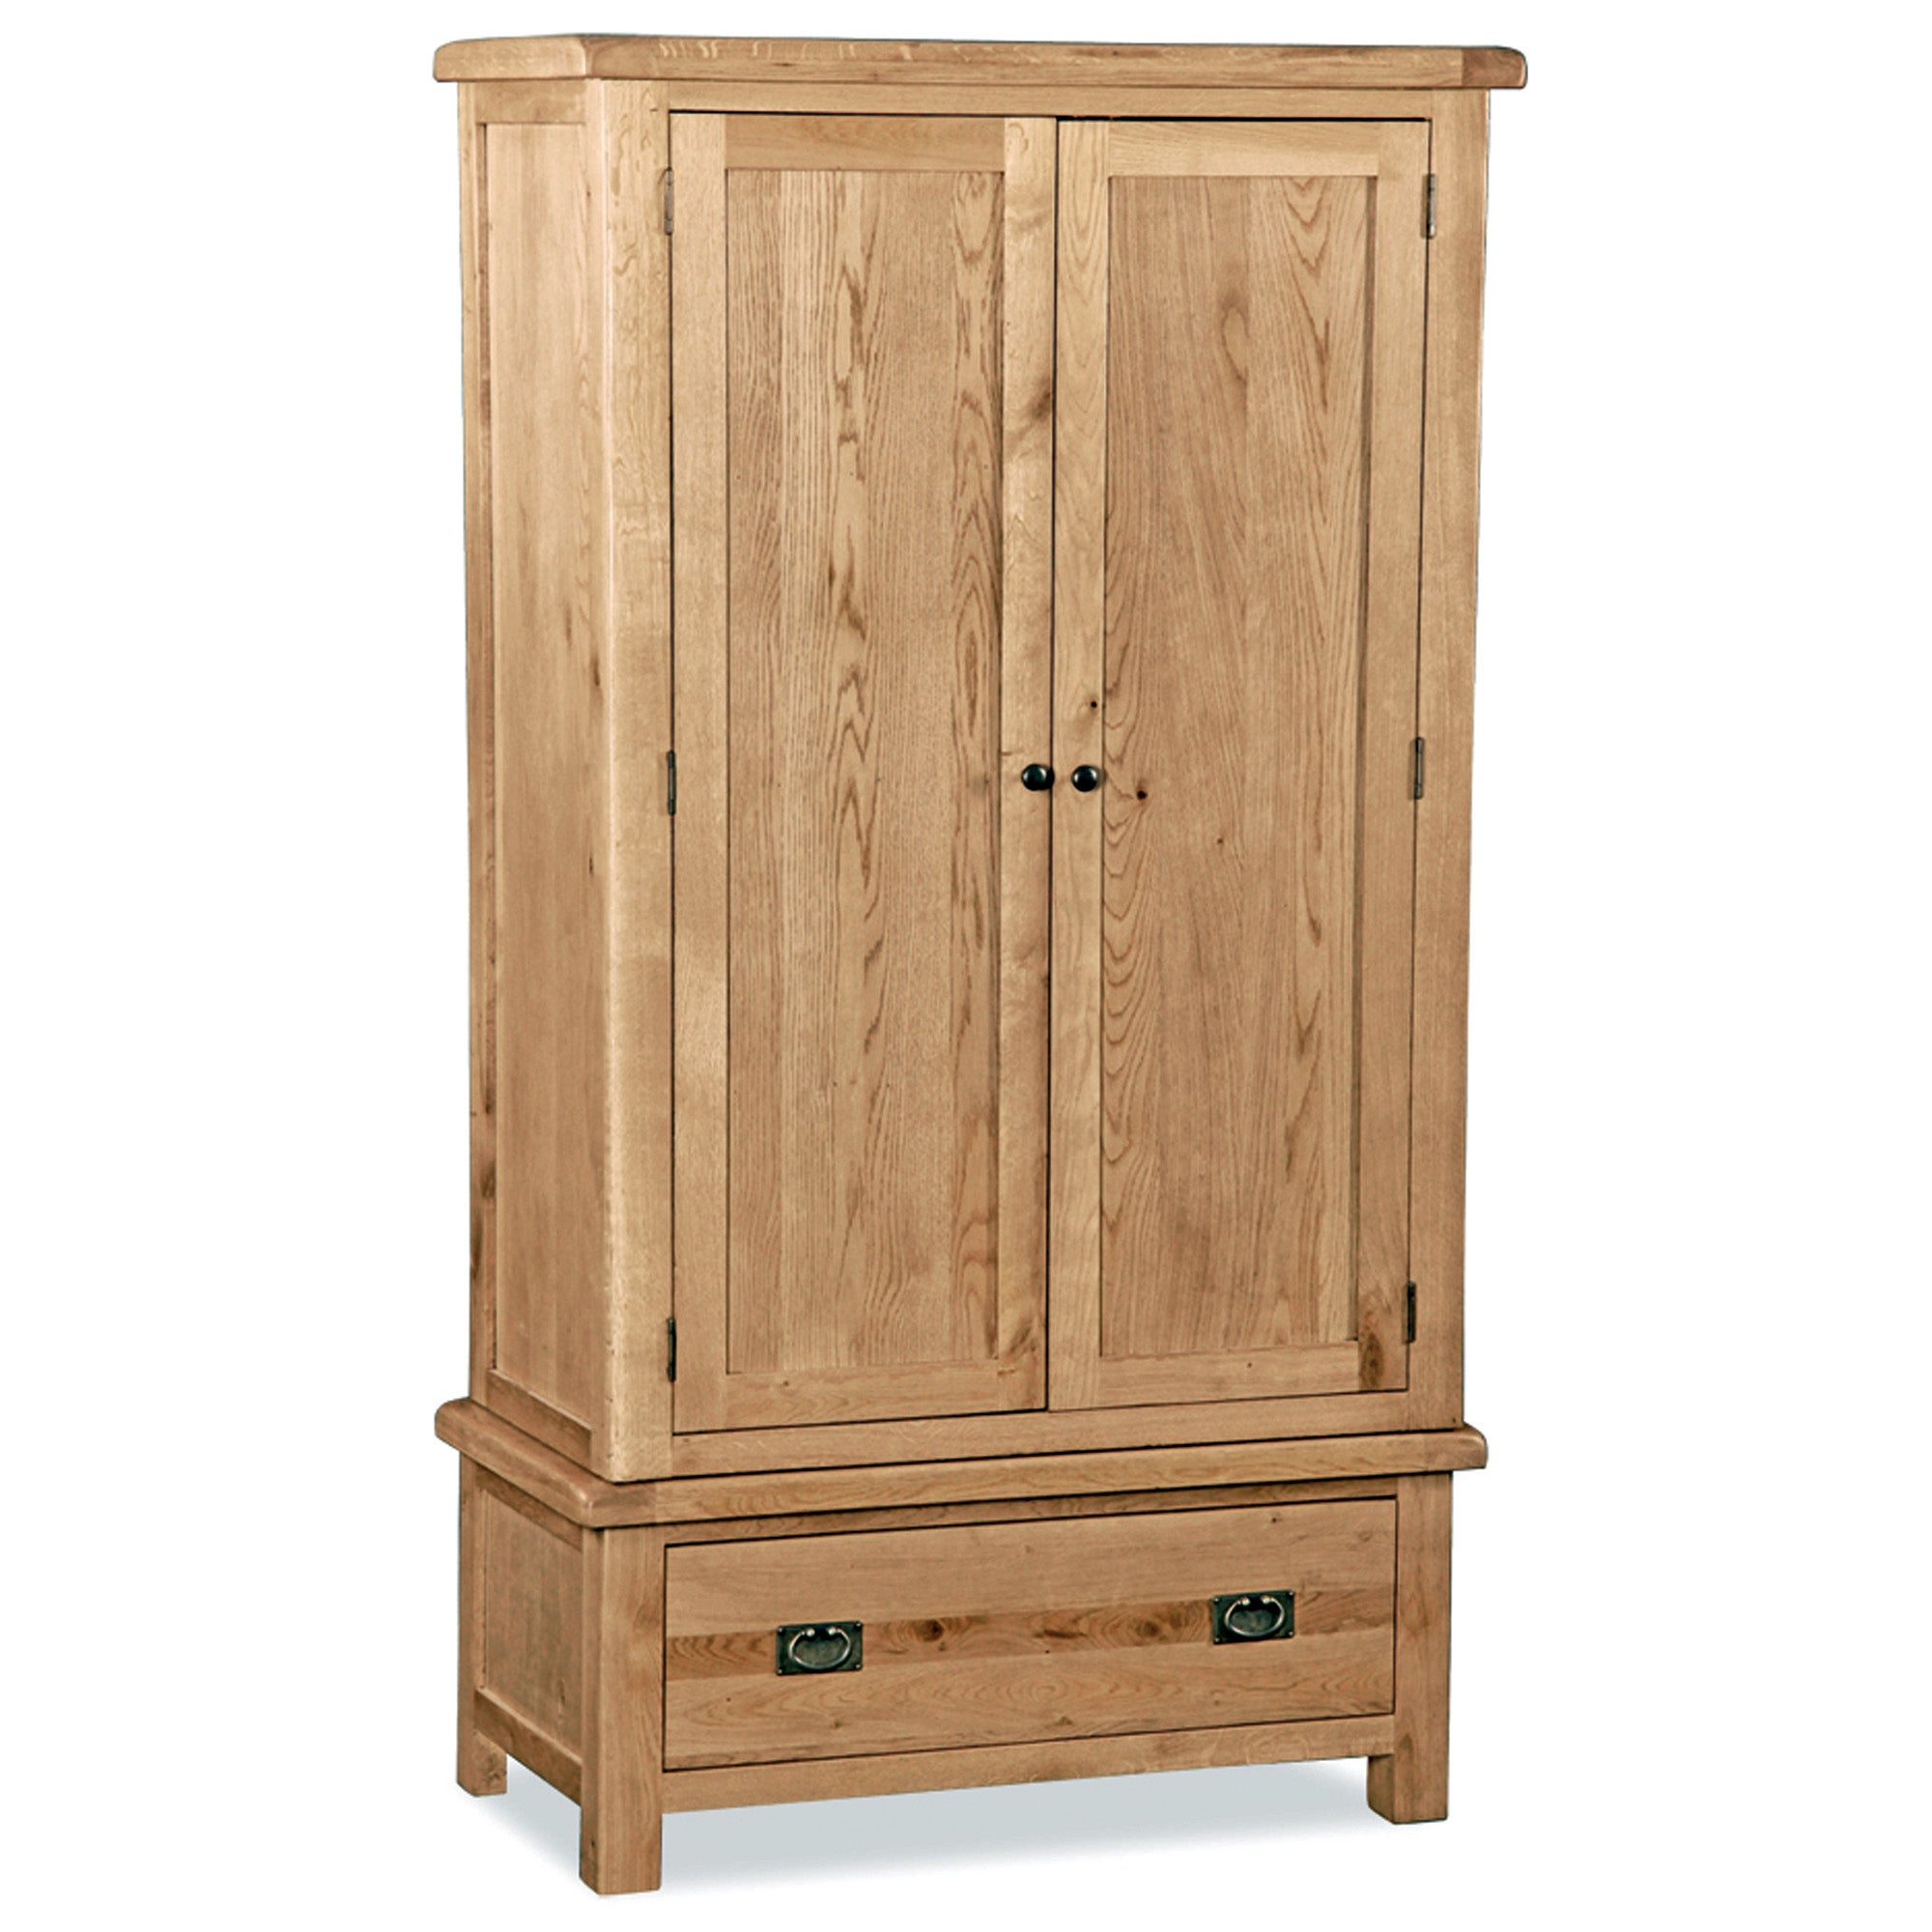 Photo of Aylesbury oak double wardrobe light brown / natural